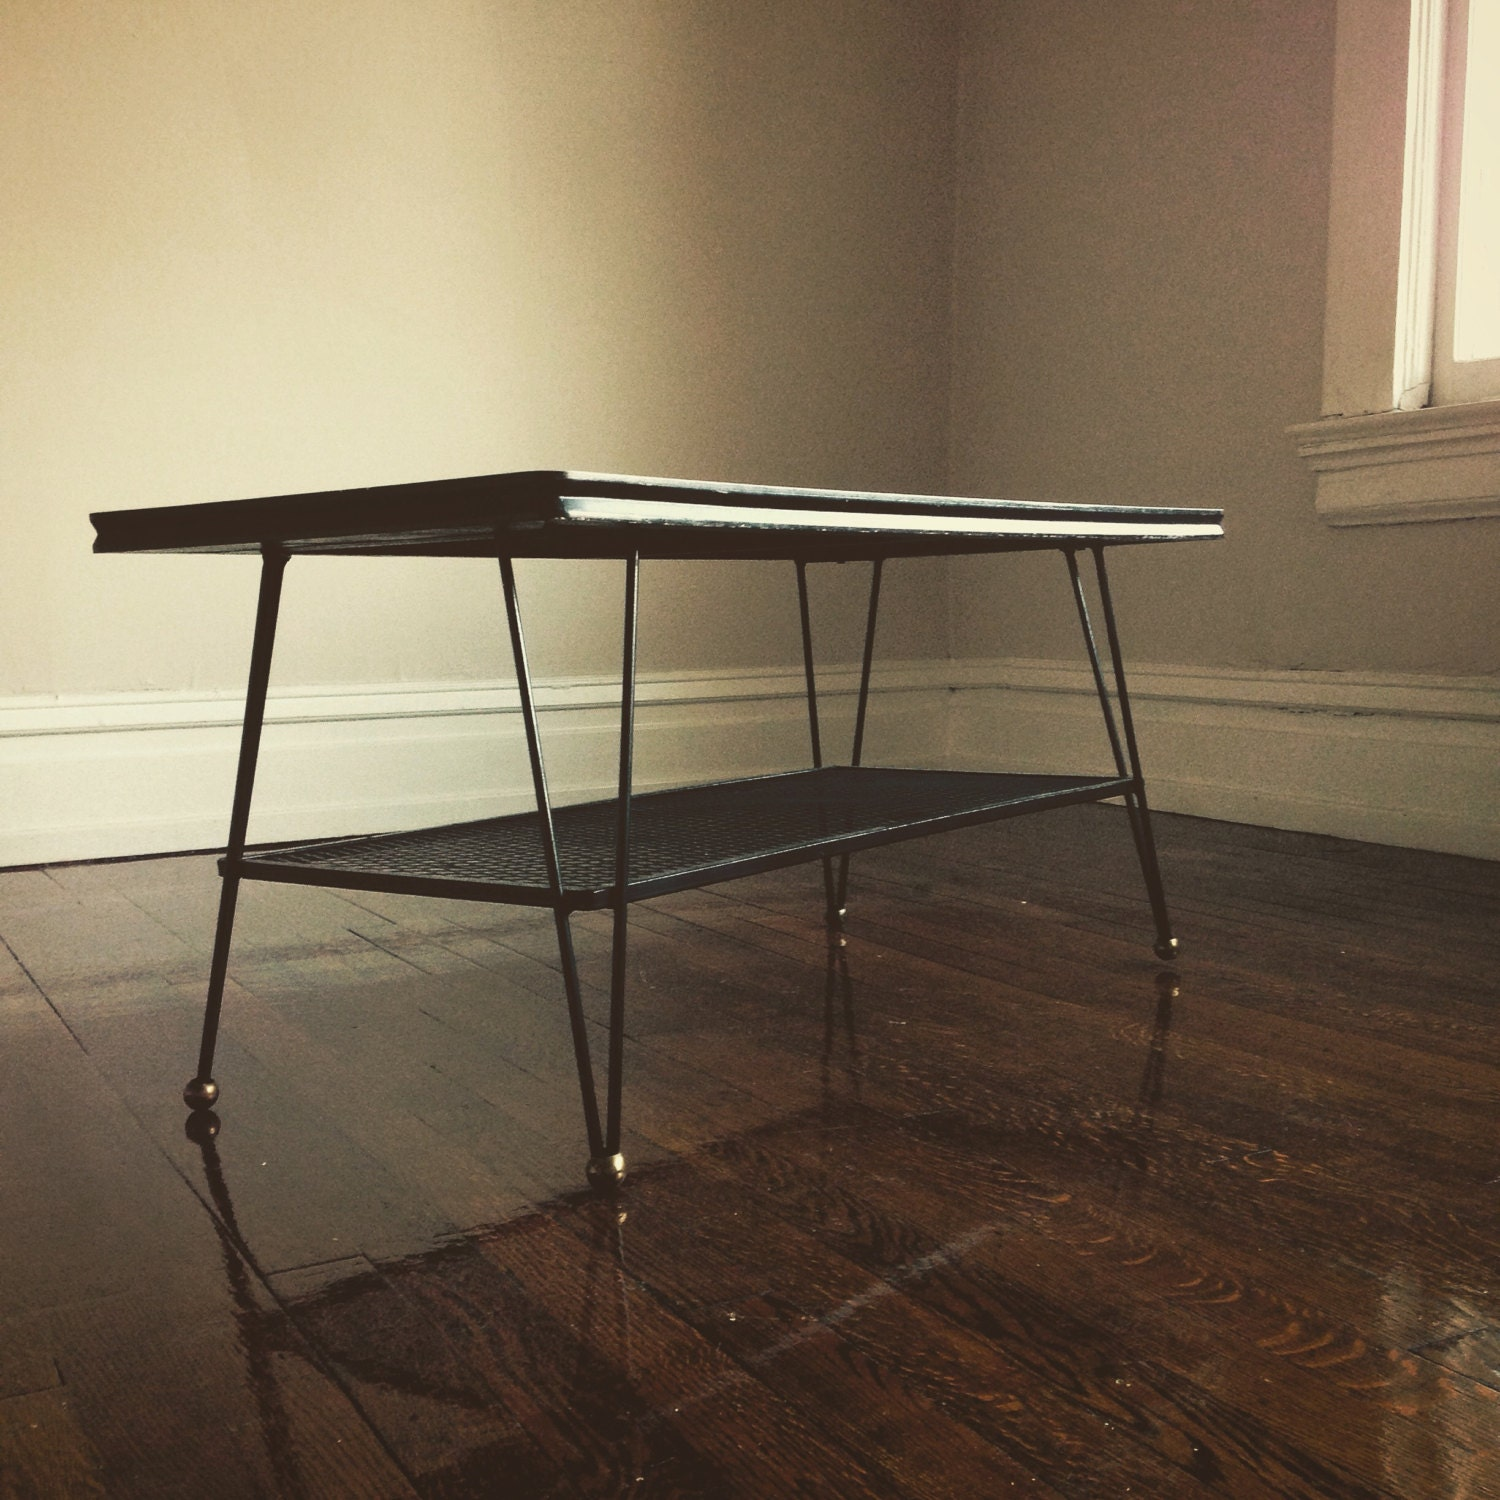 Coffee Table Legs Gold: 1950s Mid Century Atomic Coffee Table Hairpin Legs GOLD Feet